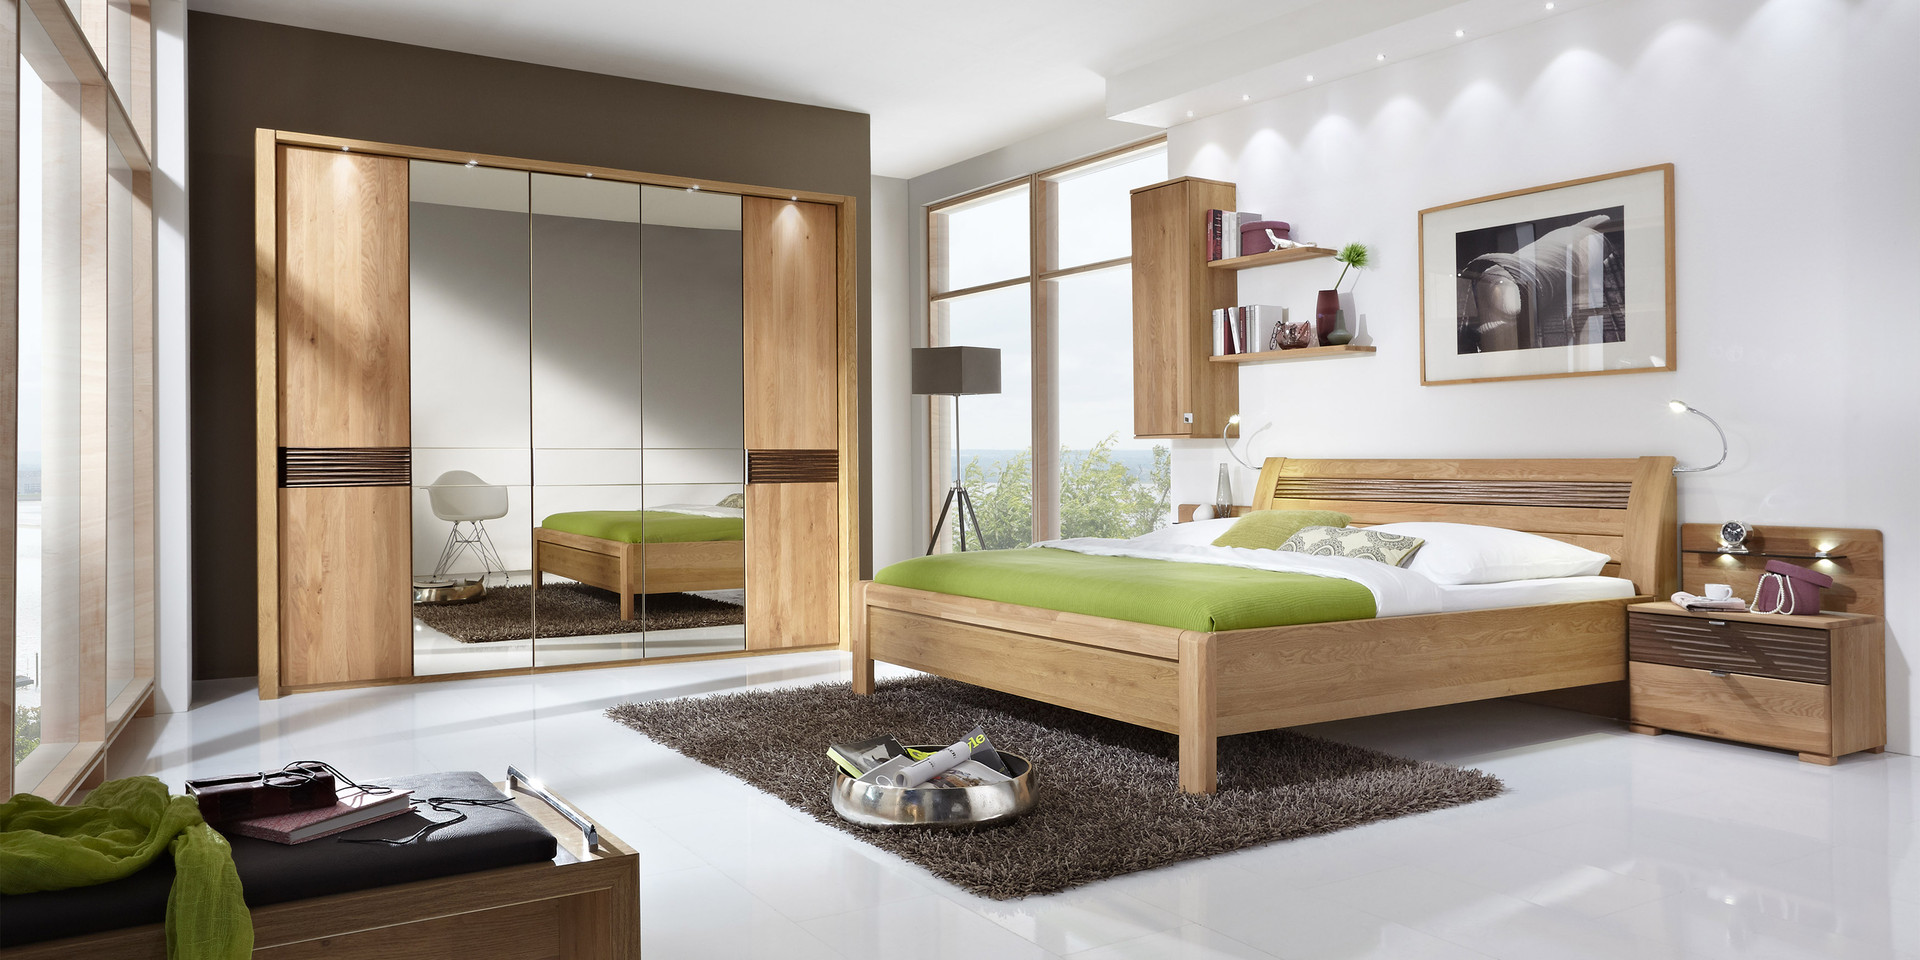 erleben sie das schlafzimmer lugano m belhersteller wiemann. Black Bedroom Furniture Sets. Home Design Ideas